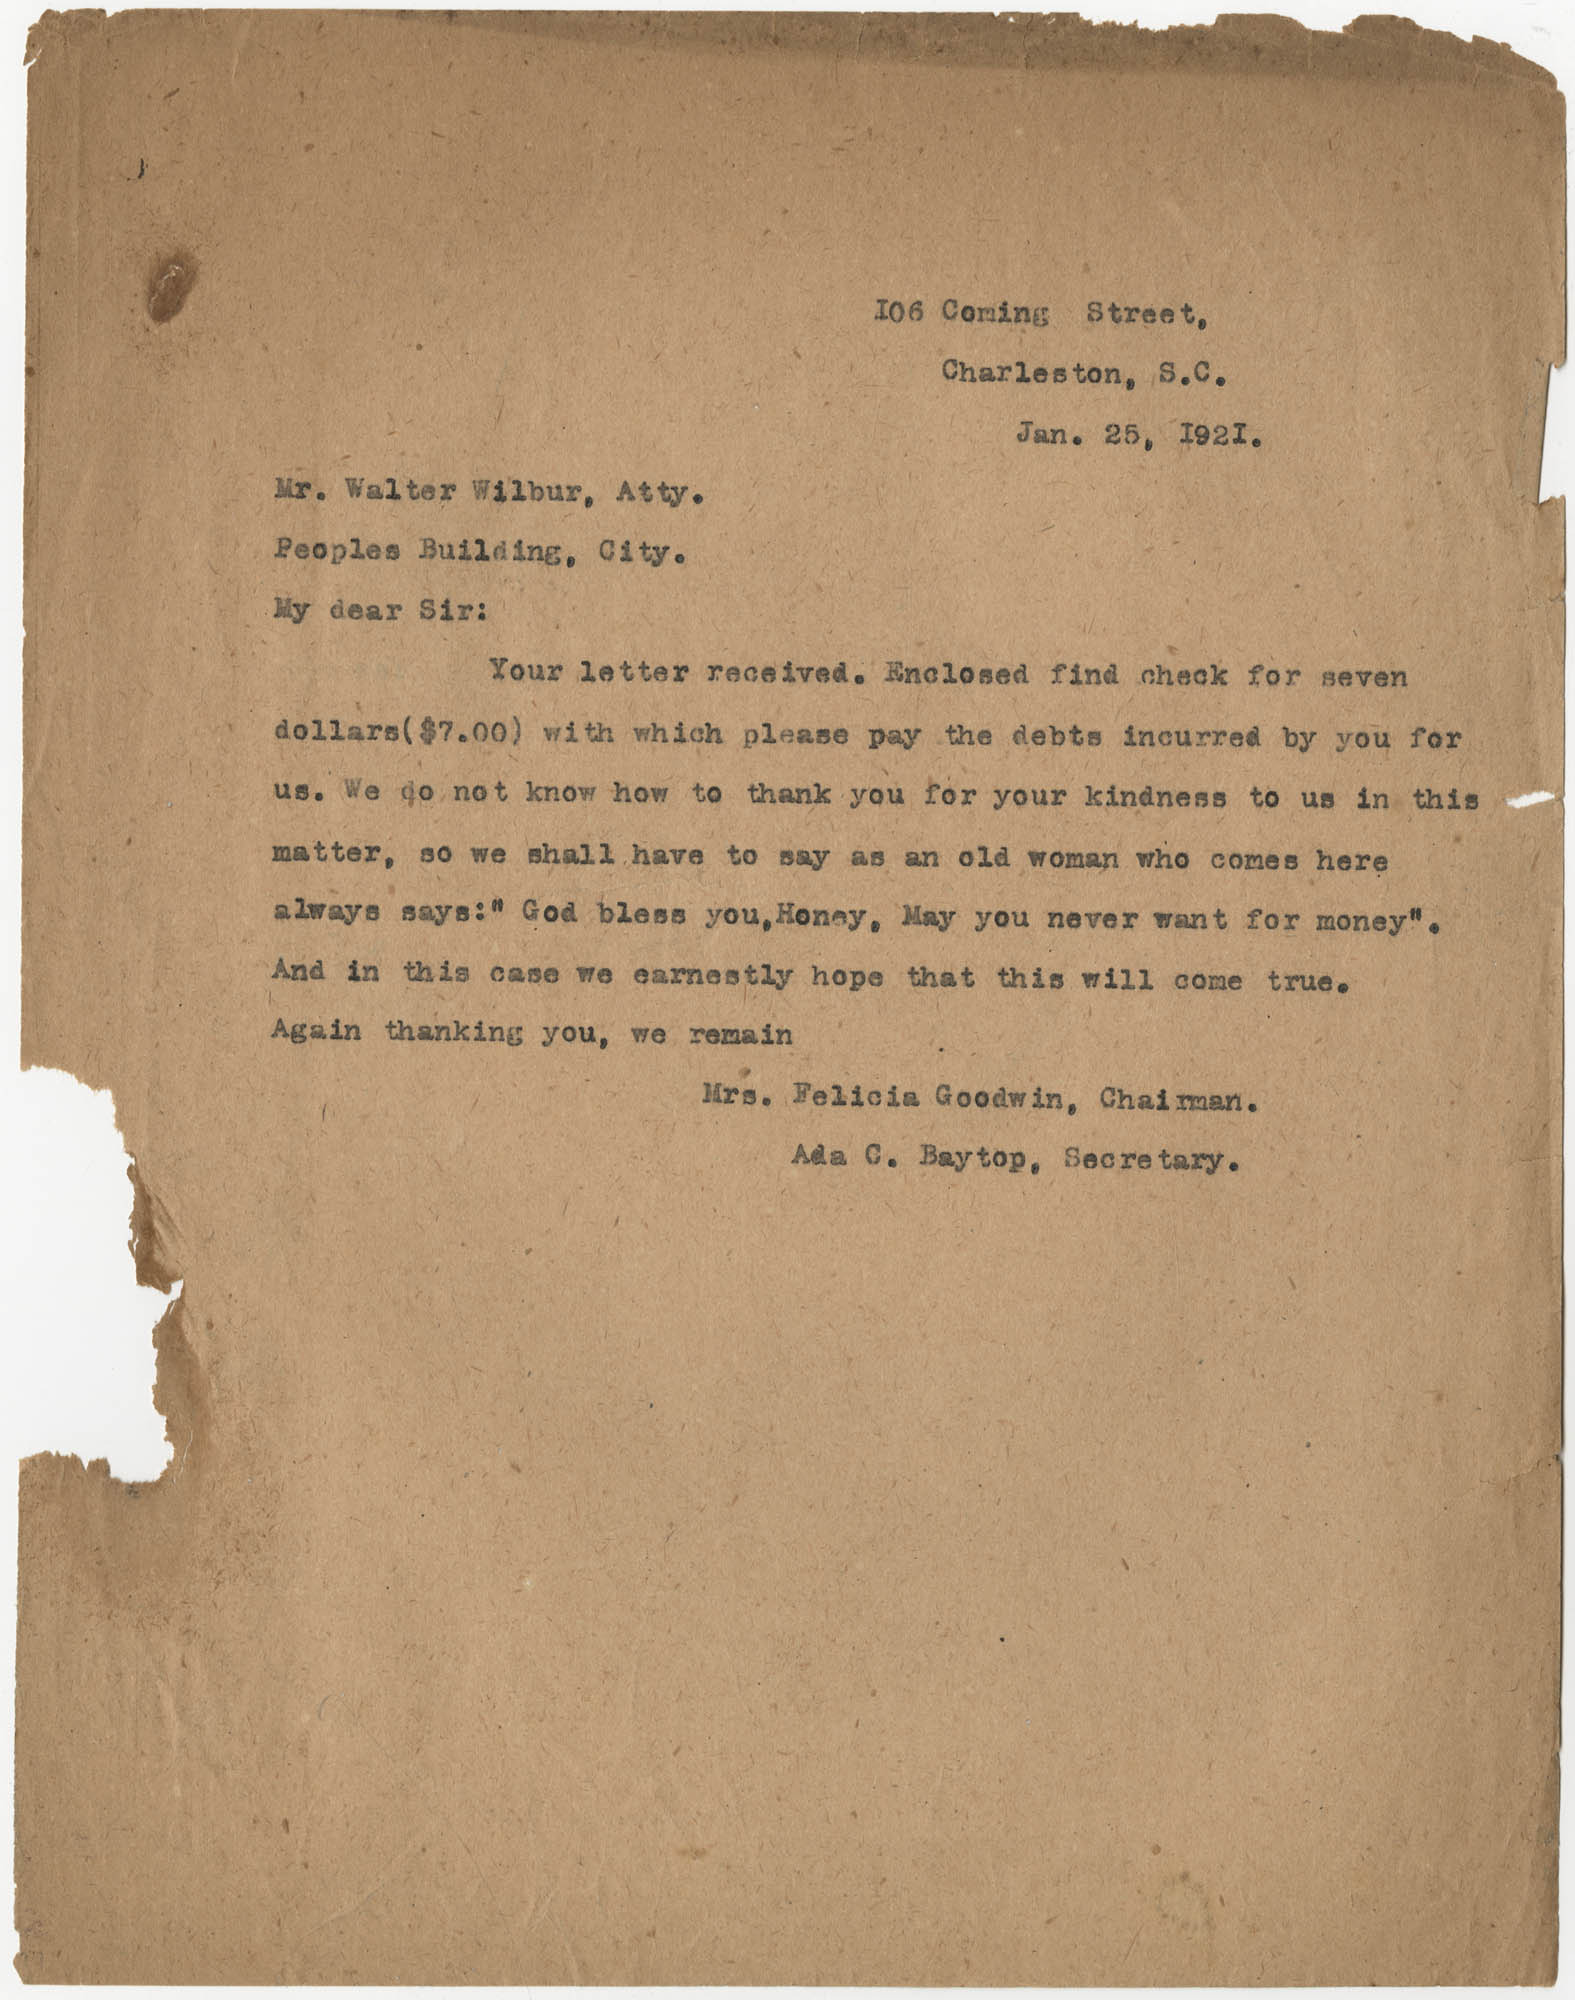 Letter from Felicia Goodwin and Ada C. Baytop to Walter Wilbur, January 25, 1921